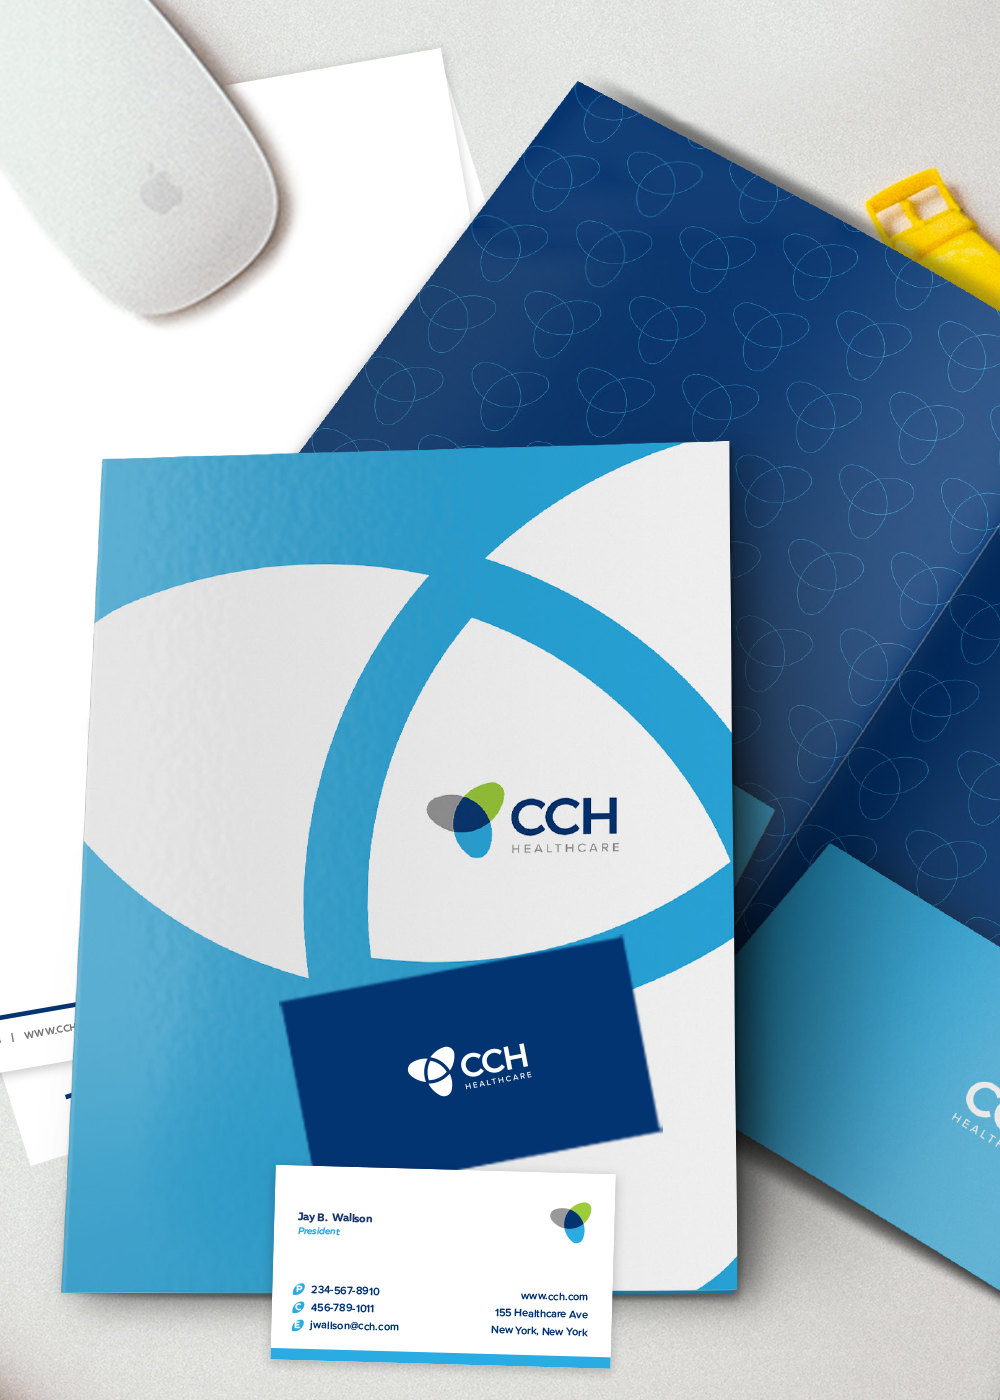 CCH Healthcare Branded Papers - iDesign Branding